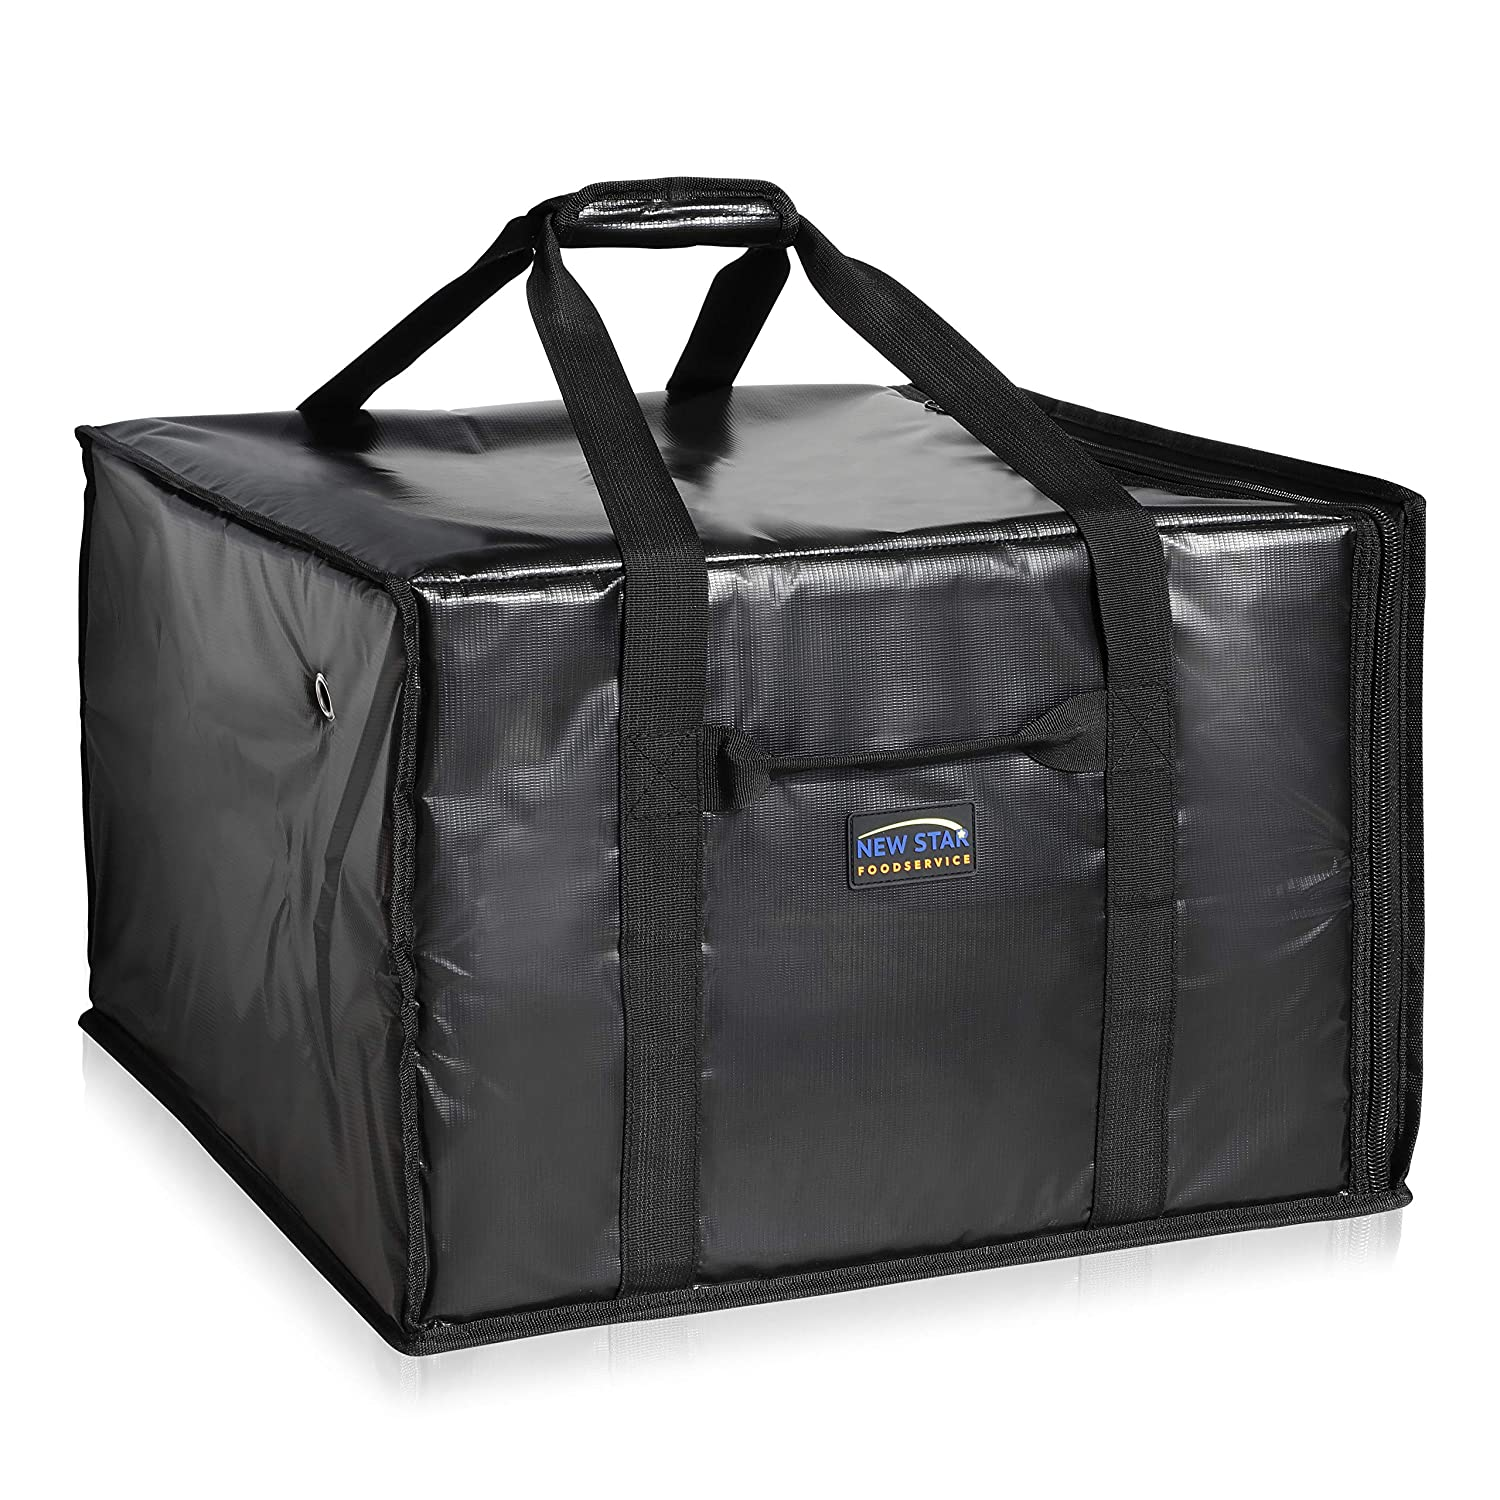 """New Star Foodservice 51148 Insulated Pizza Delivery Bag, 20"""" by 19"""" by 13"""", Black"""